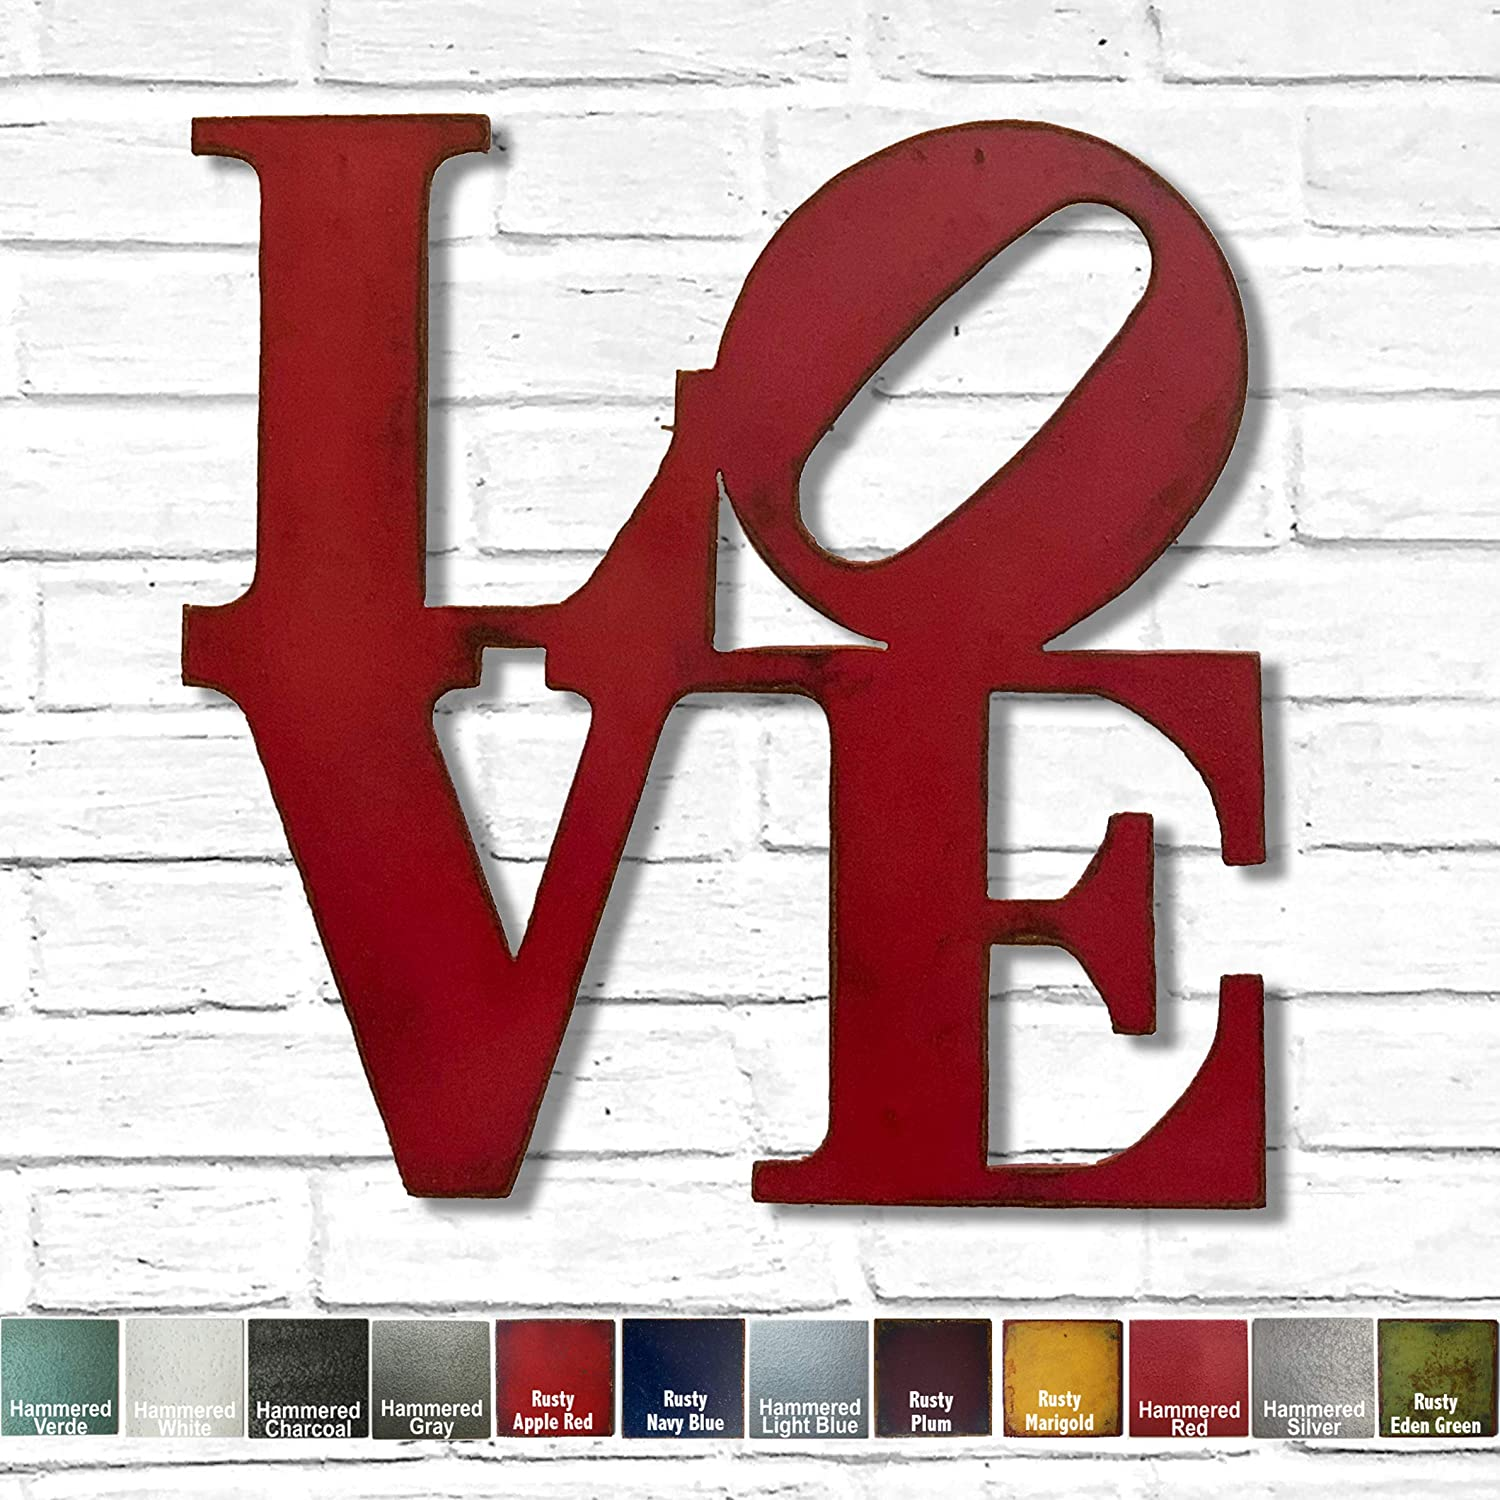 B016B9BCLE LOVE Metal Wall Art - Choose your size - 8x8, 11x11, 17x17, 24x24 or 36x36 inch tall - Choose LOVE, HOME, HOPE or AMOR sign - Choose your Patina Color 8150ZrVsPQL